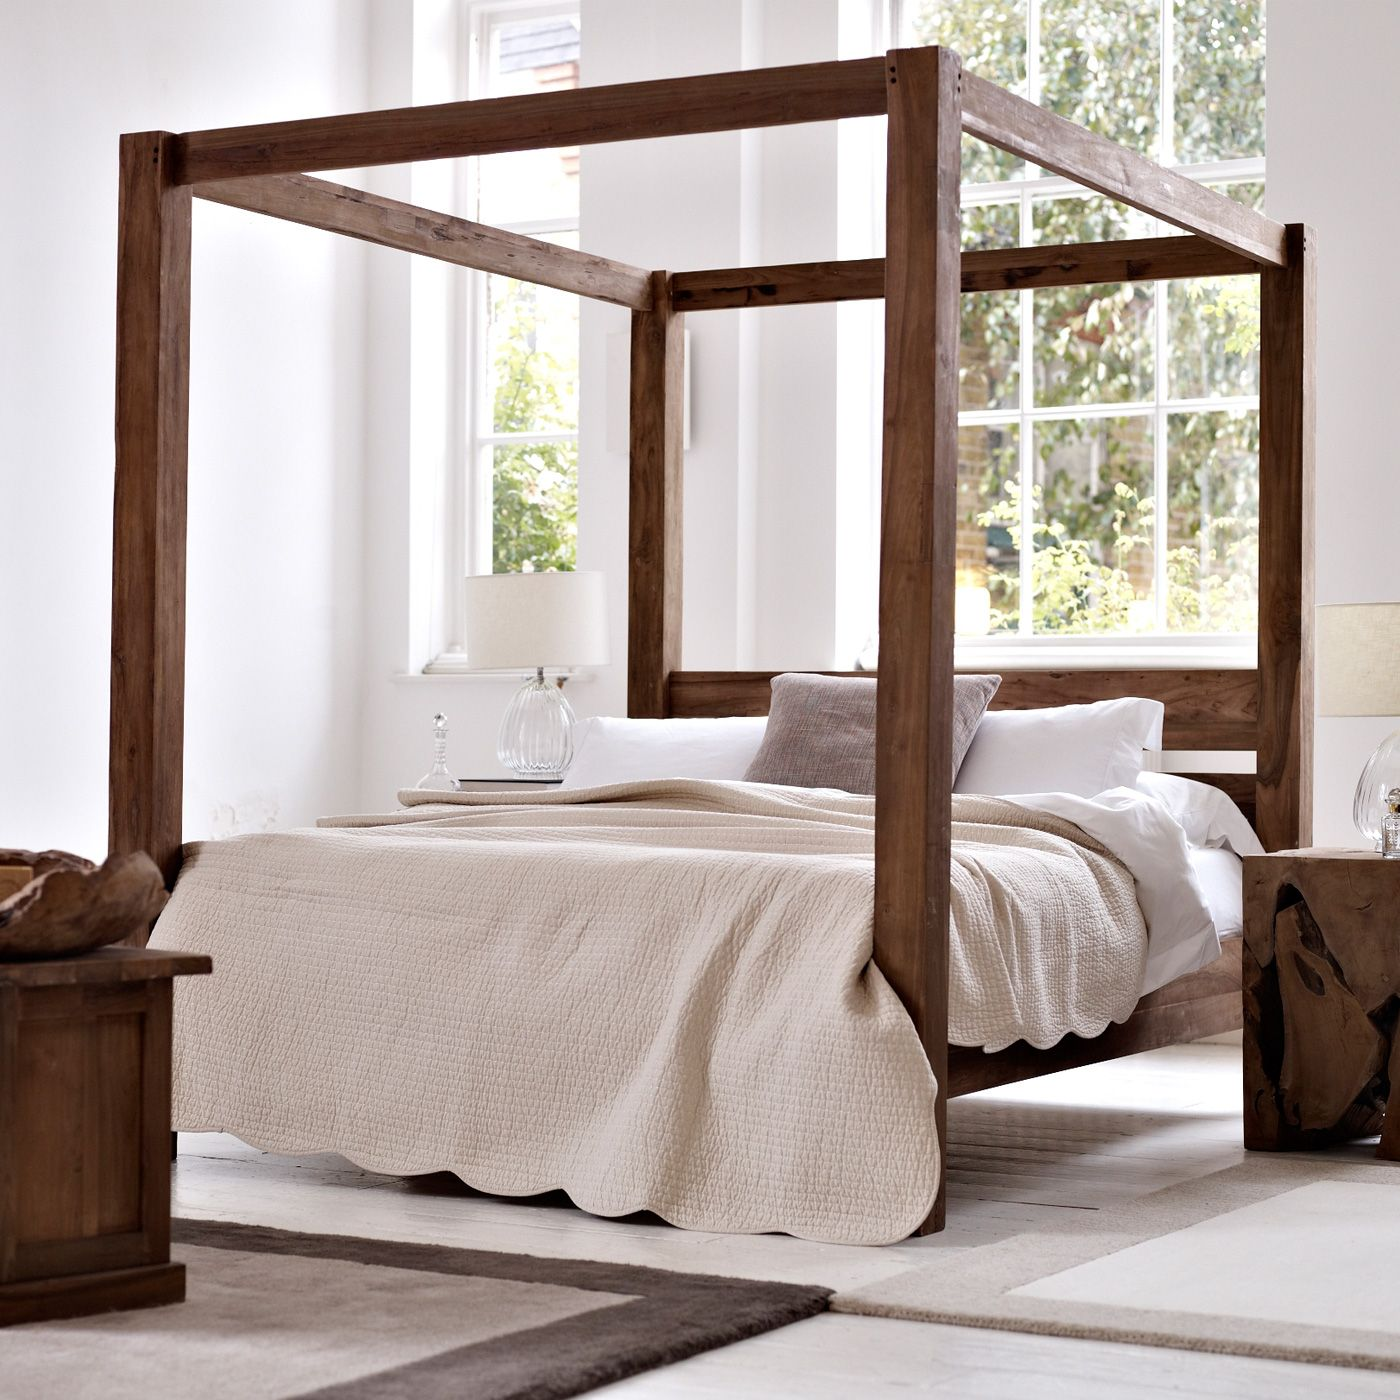 Find this pin and more on for the home by joycenik sublime four poster bed